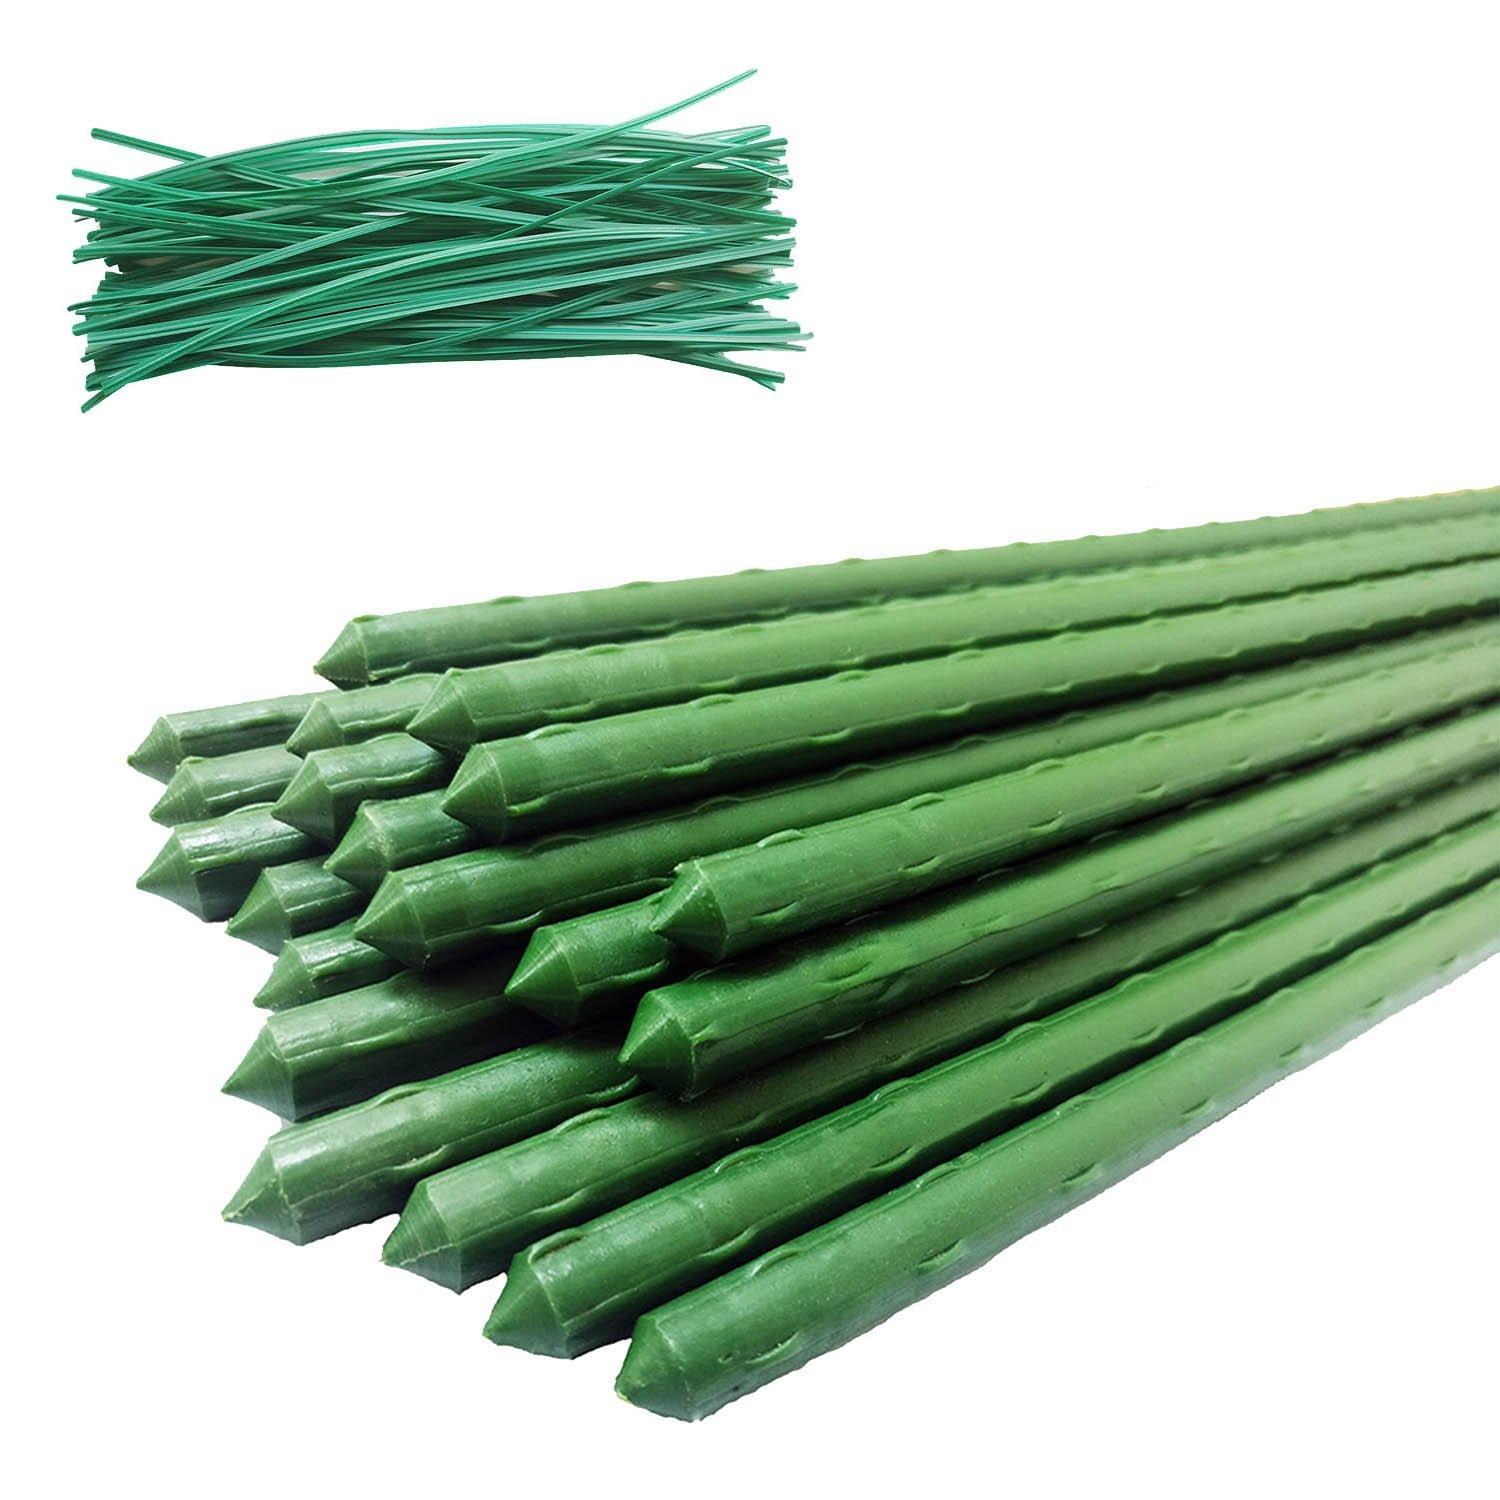 OAKBAY 30 Pack of 4 feet, Extra-Strong Metal Plant Garden Stake, Plus Complimentary 50 Twist Ties, 4 Feet Plant Support (4')